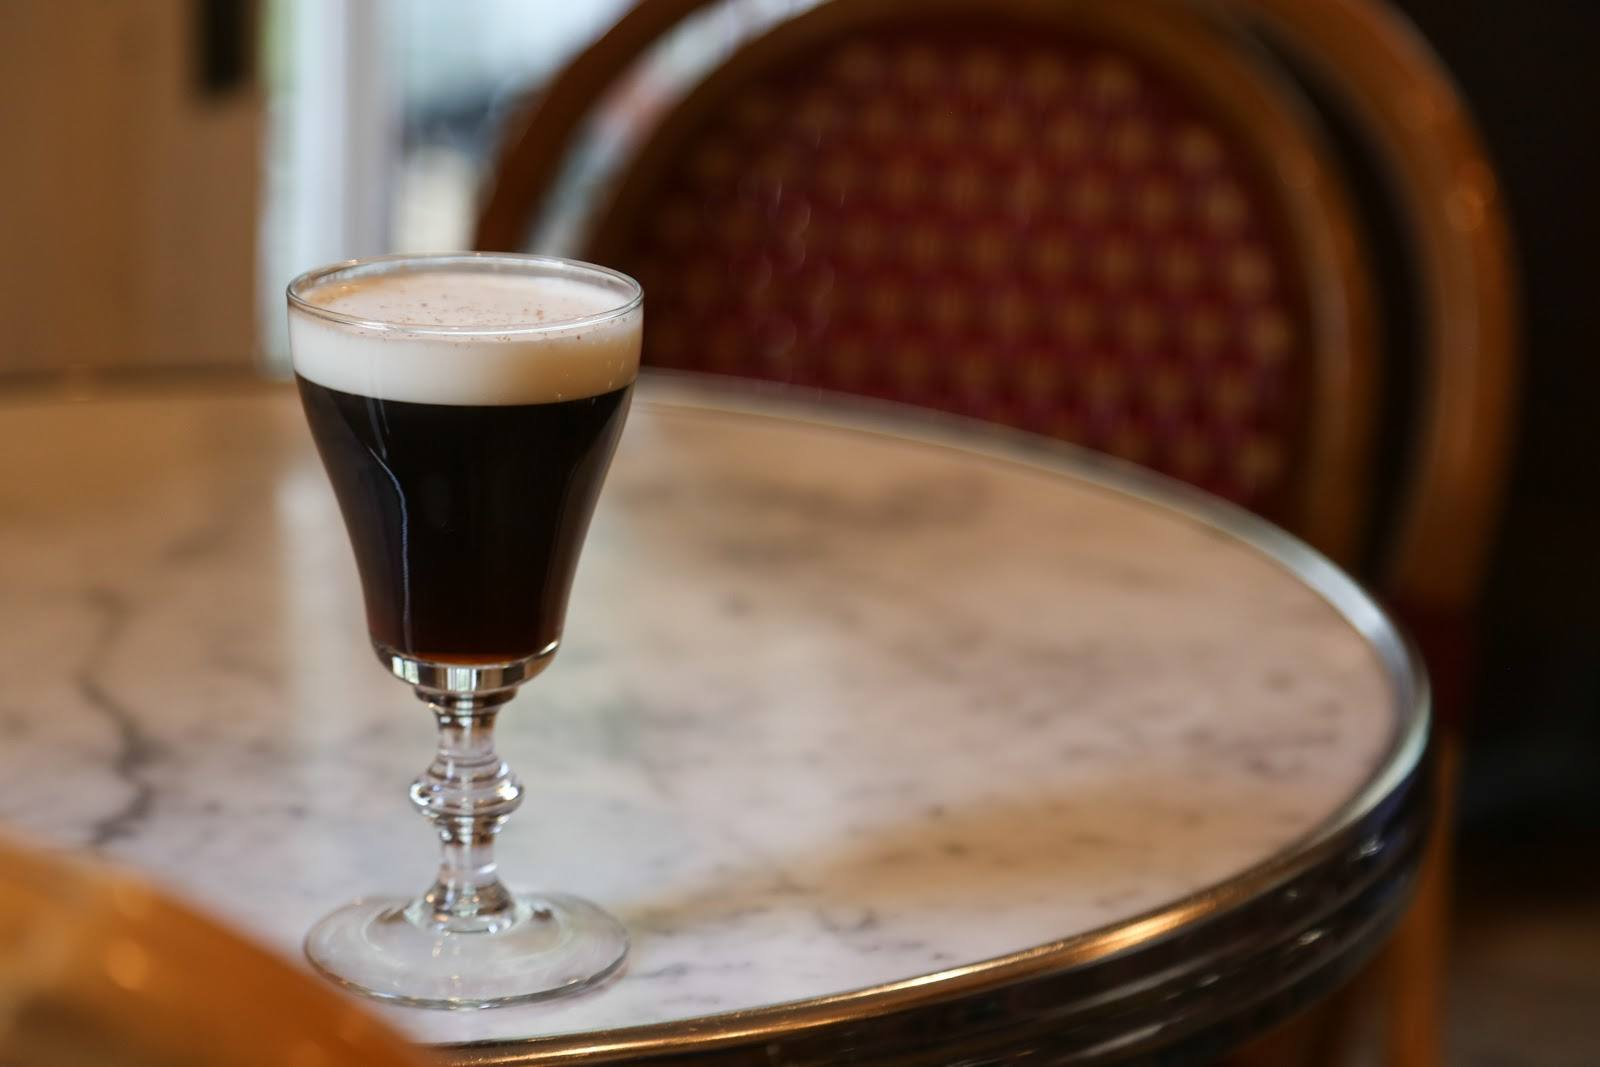 Irish Coffee at Big Bar on St. Patrick's Day